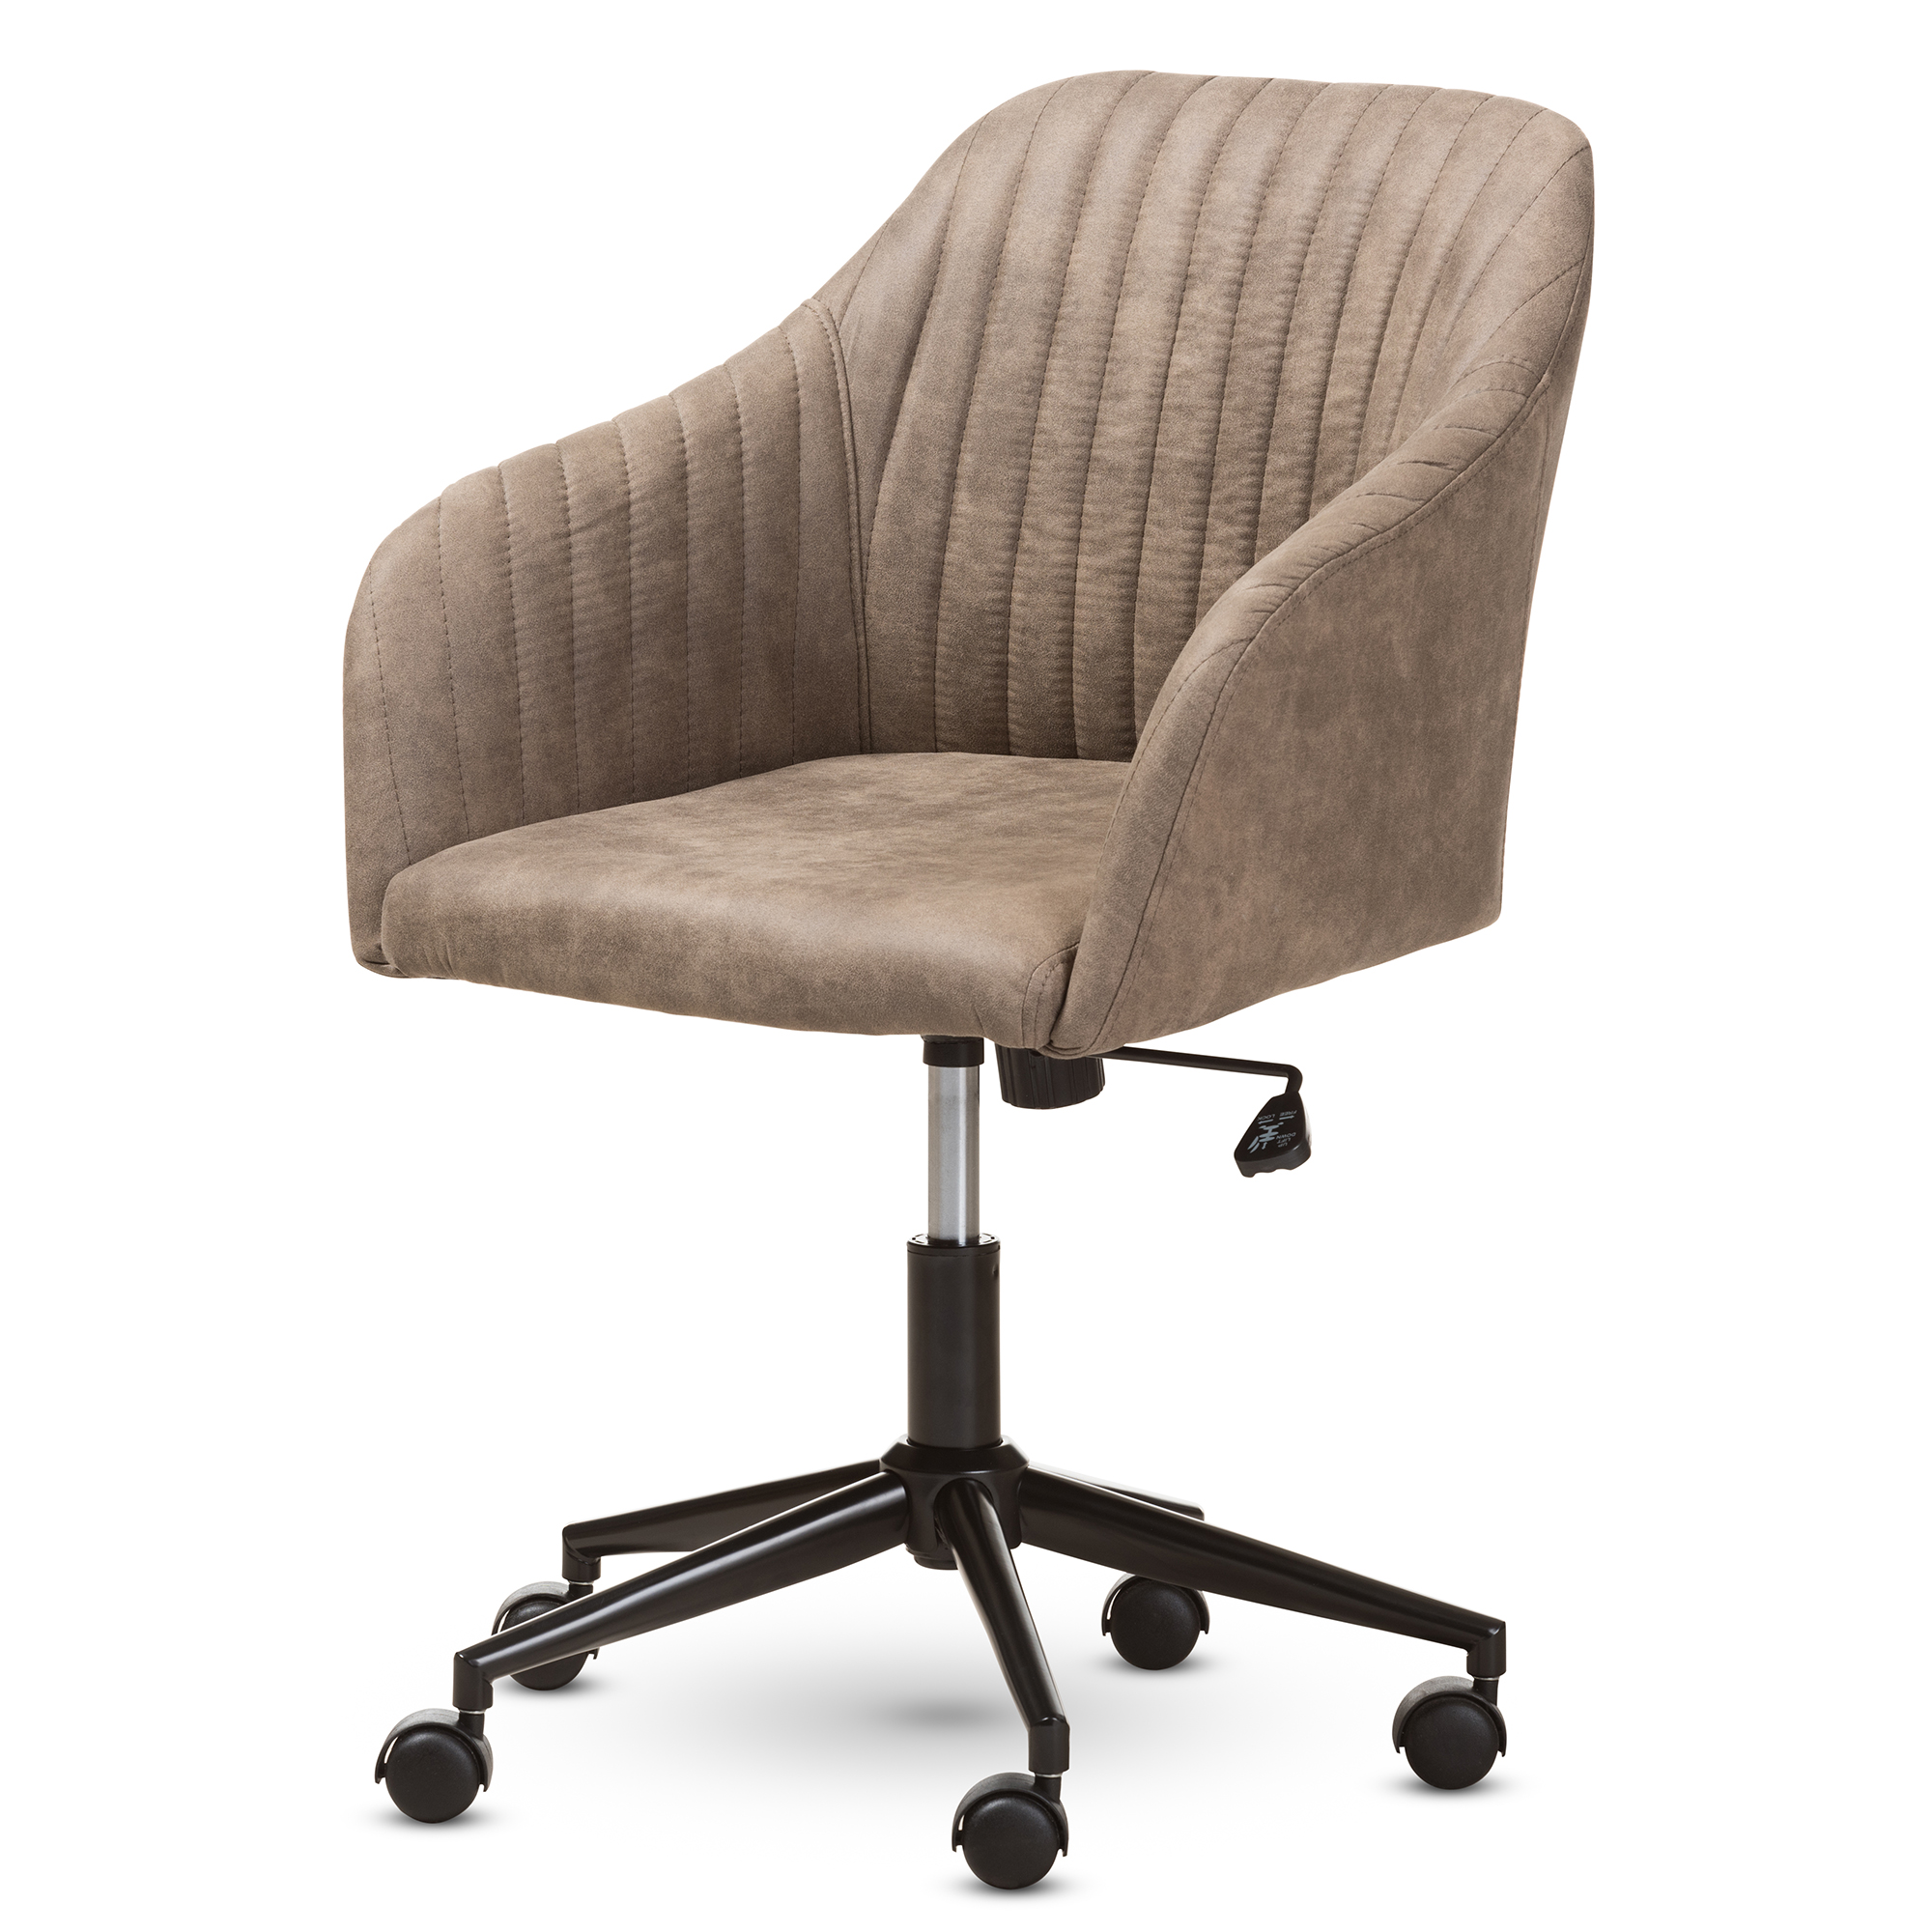 Baxton Studio Maida Mid Century Modern Light Brown Fabric Upholstered Office  Chair Baxton Studio Restaurant